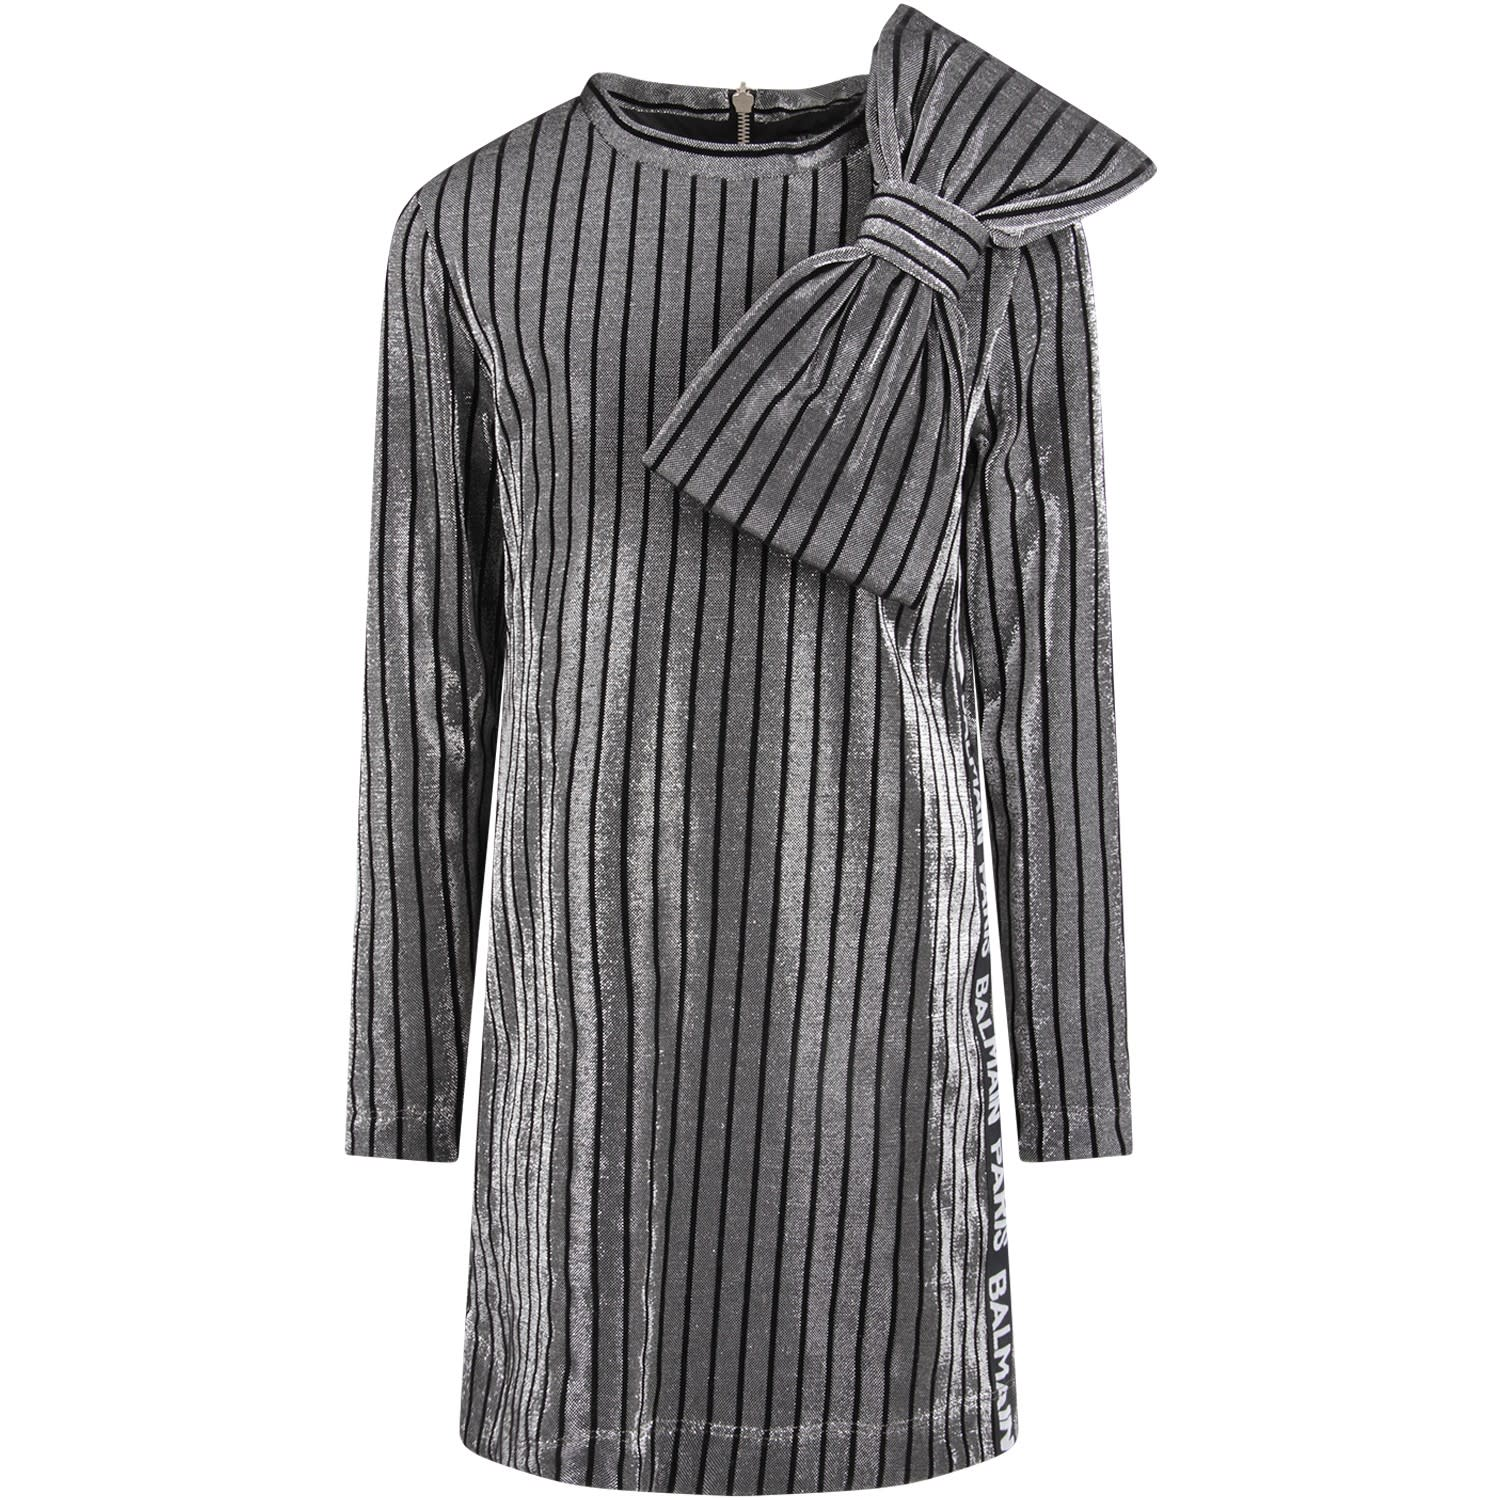 Buy Balmain Black And Silver Girl Dress With Big Bow online, shop Balmain with free shipping